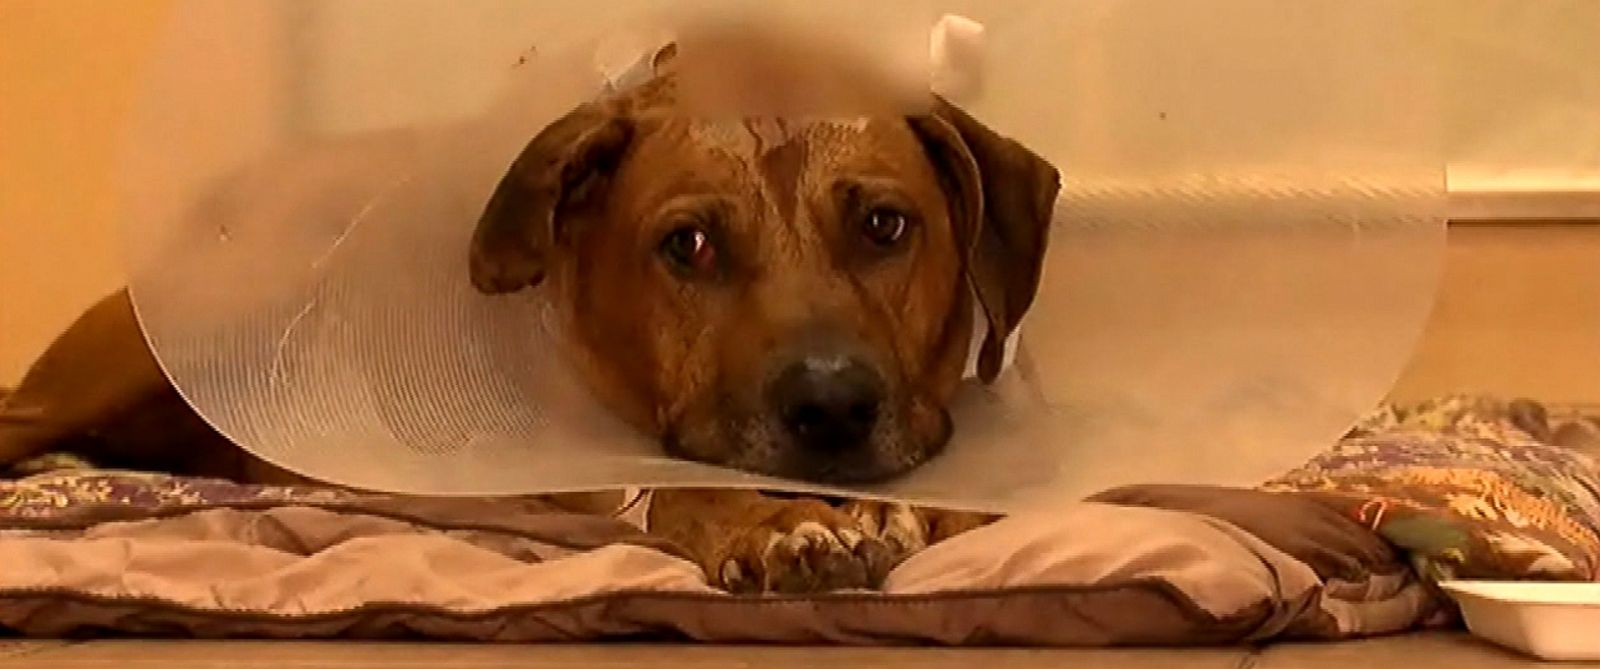 PHOTO: Chris Watsons dog, Anubis, survived a gunshot wound to his head during a home burglary on Oct. 5, 2015 in St. Petersburg, Fla.